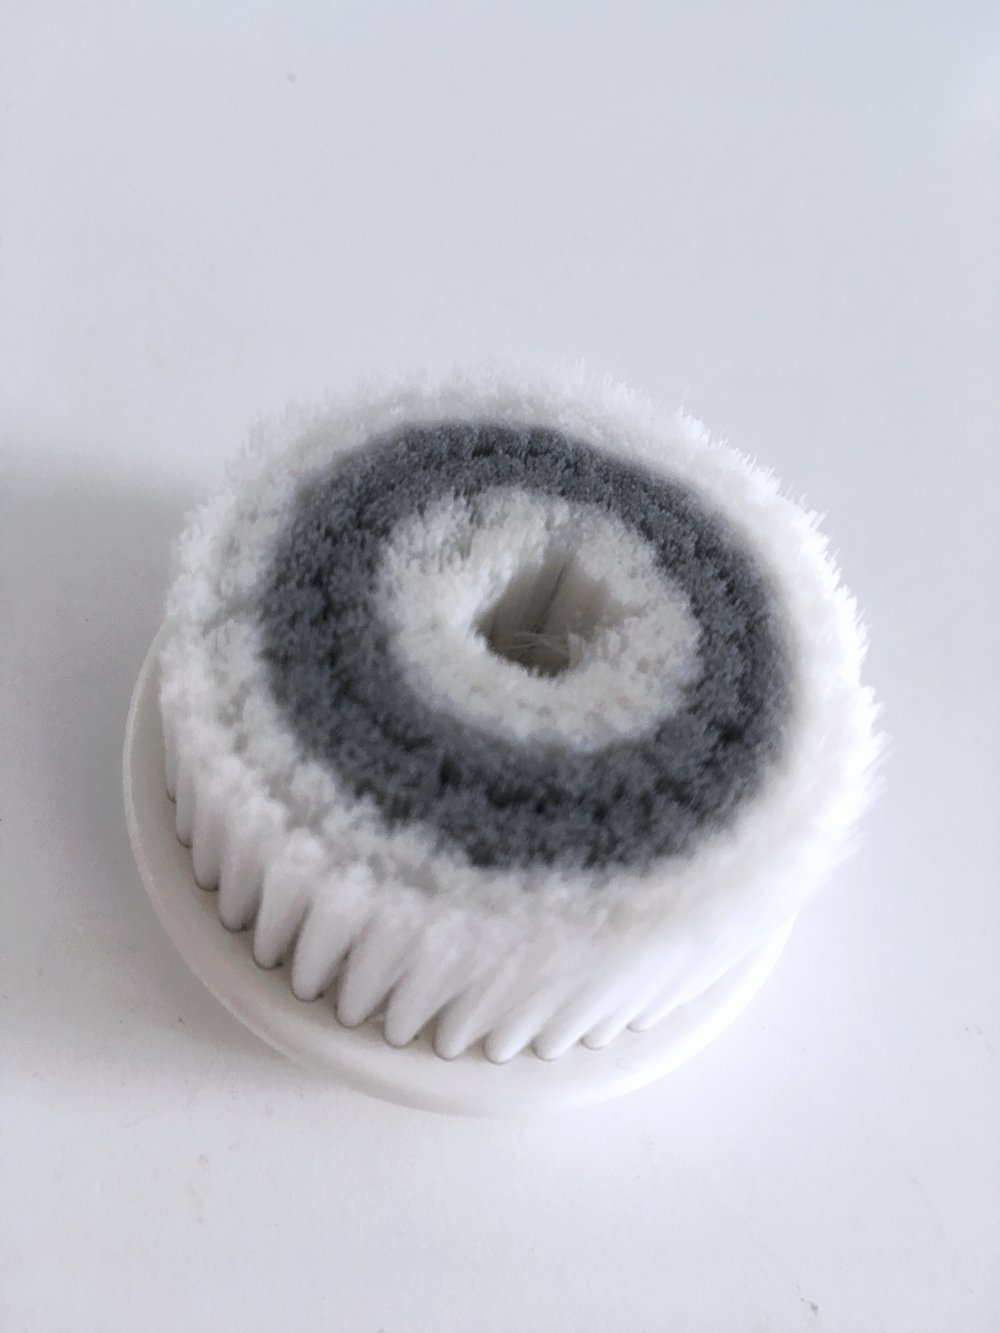 Daily Cleansing Brush - This is the Daily Cleansing Brush. This brush is super soft and is specifically designed to give you the most gentle, tender clean. I use this one in the morning.